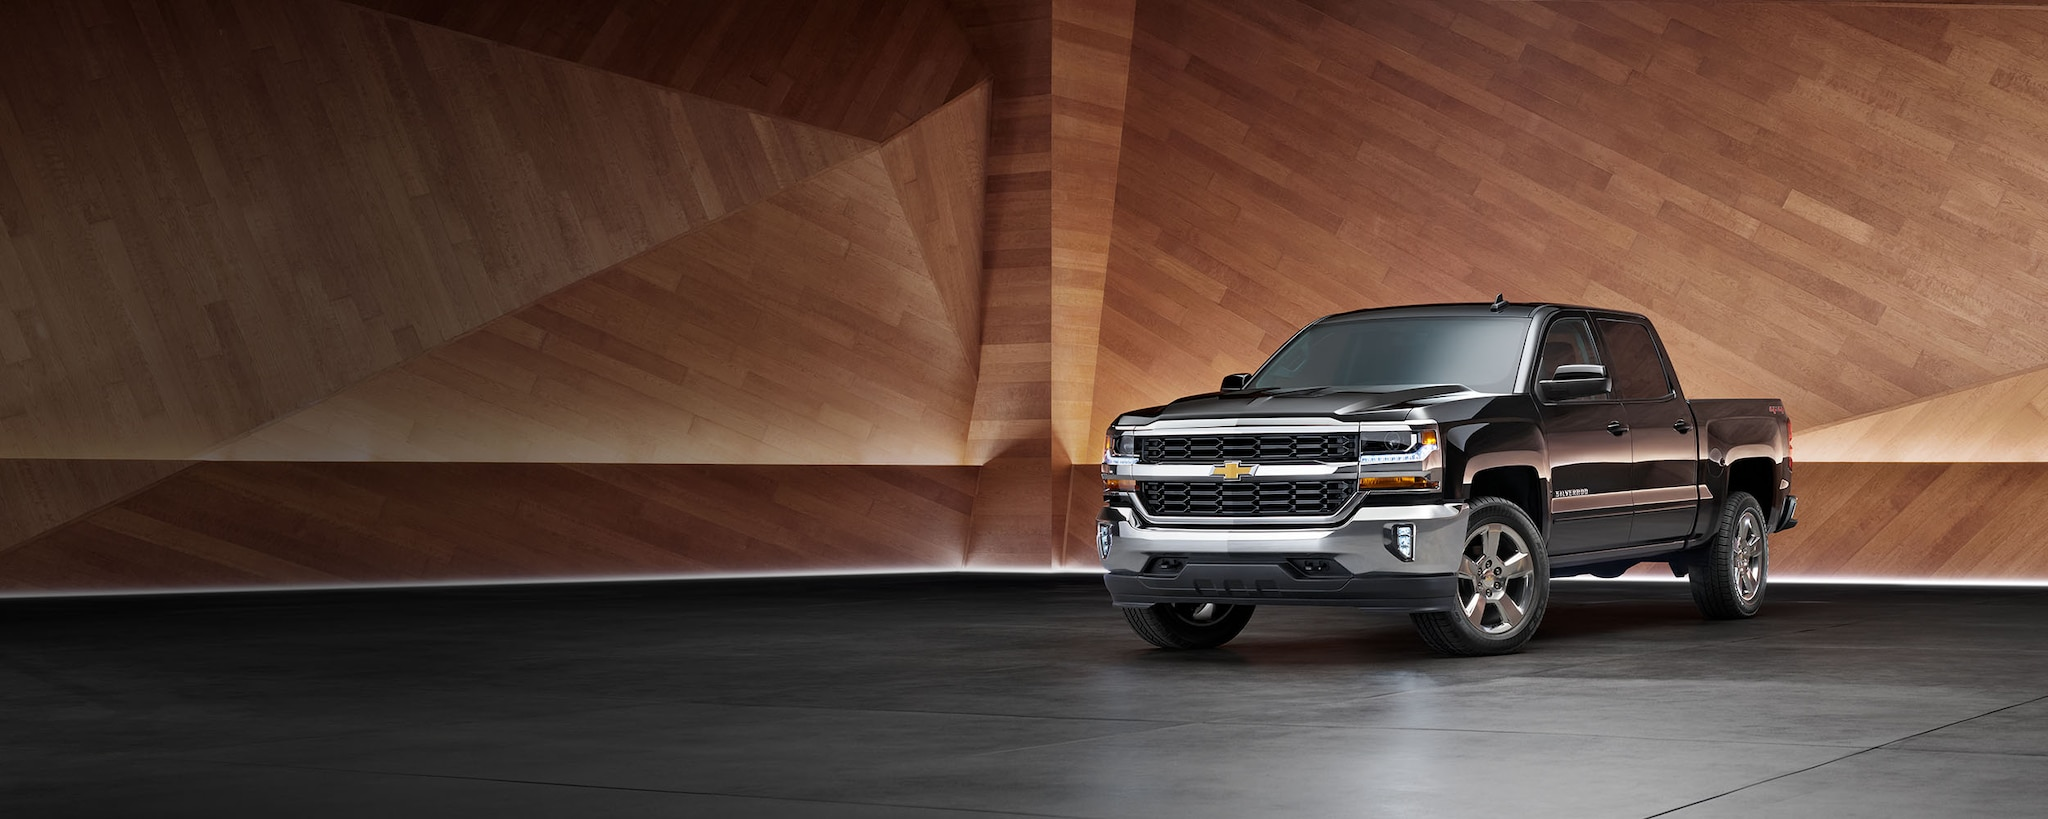 Black Friday de Chevy - Silverado 1500 de cabina extendida LT All Star: valor total de $11,000 con 0% de APR